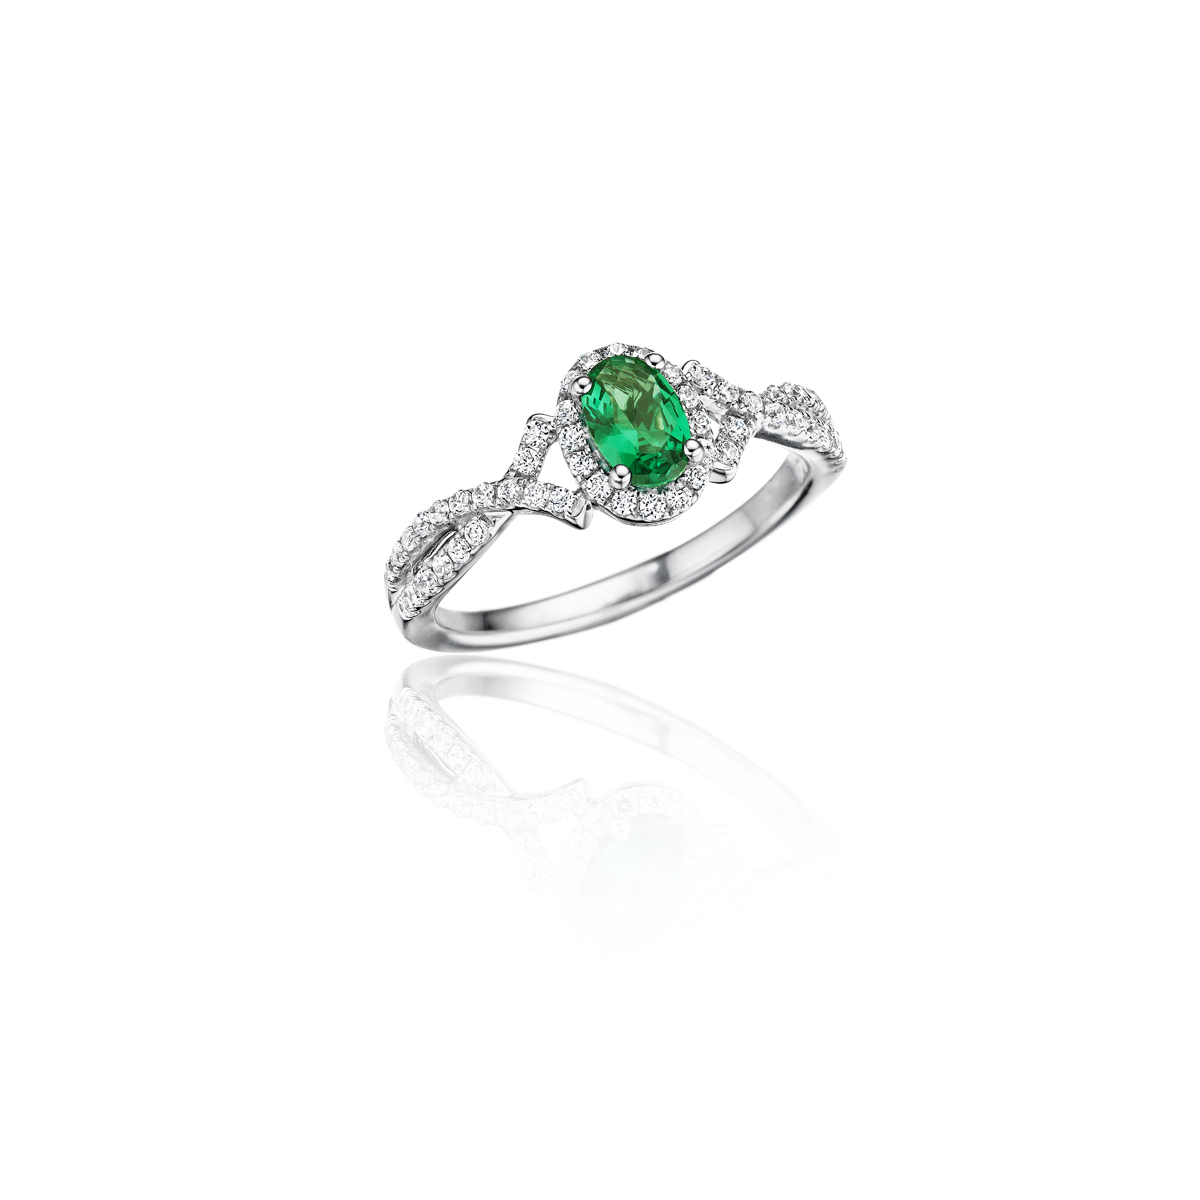 Swirls of Love Emerald and Diamond Twist Ring - This swirls of love emerald and diamond twist ring comes in a variety of material types like 14k white gold, yellow gold, rose gold and can be customized with your jeweler. Fana diamond earrings are perfect for that special woman in your life.